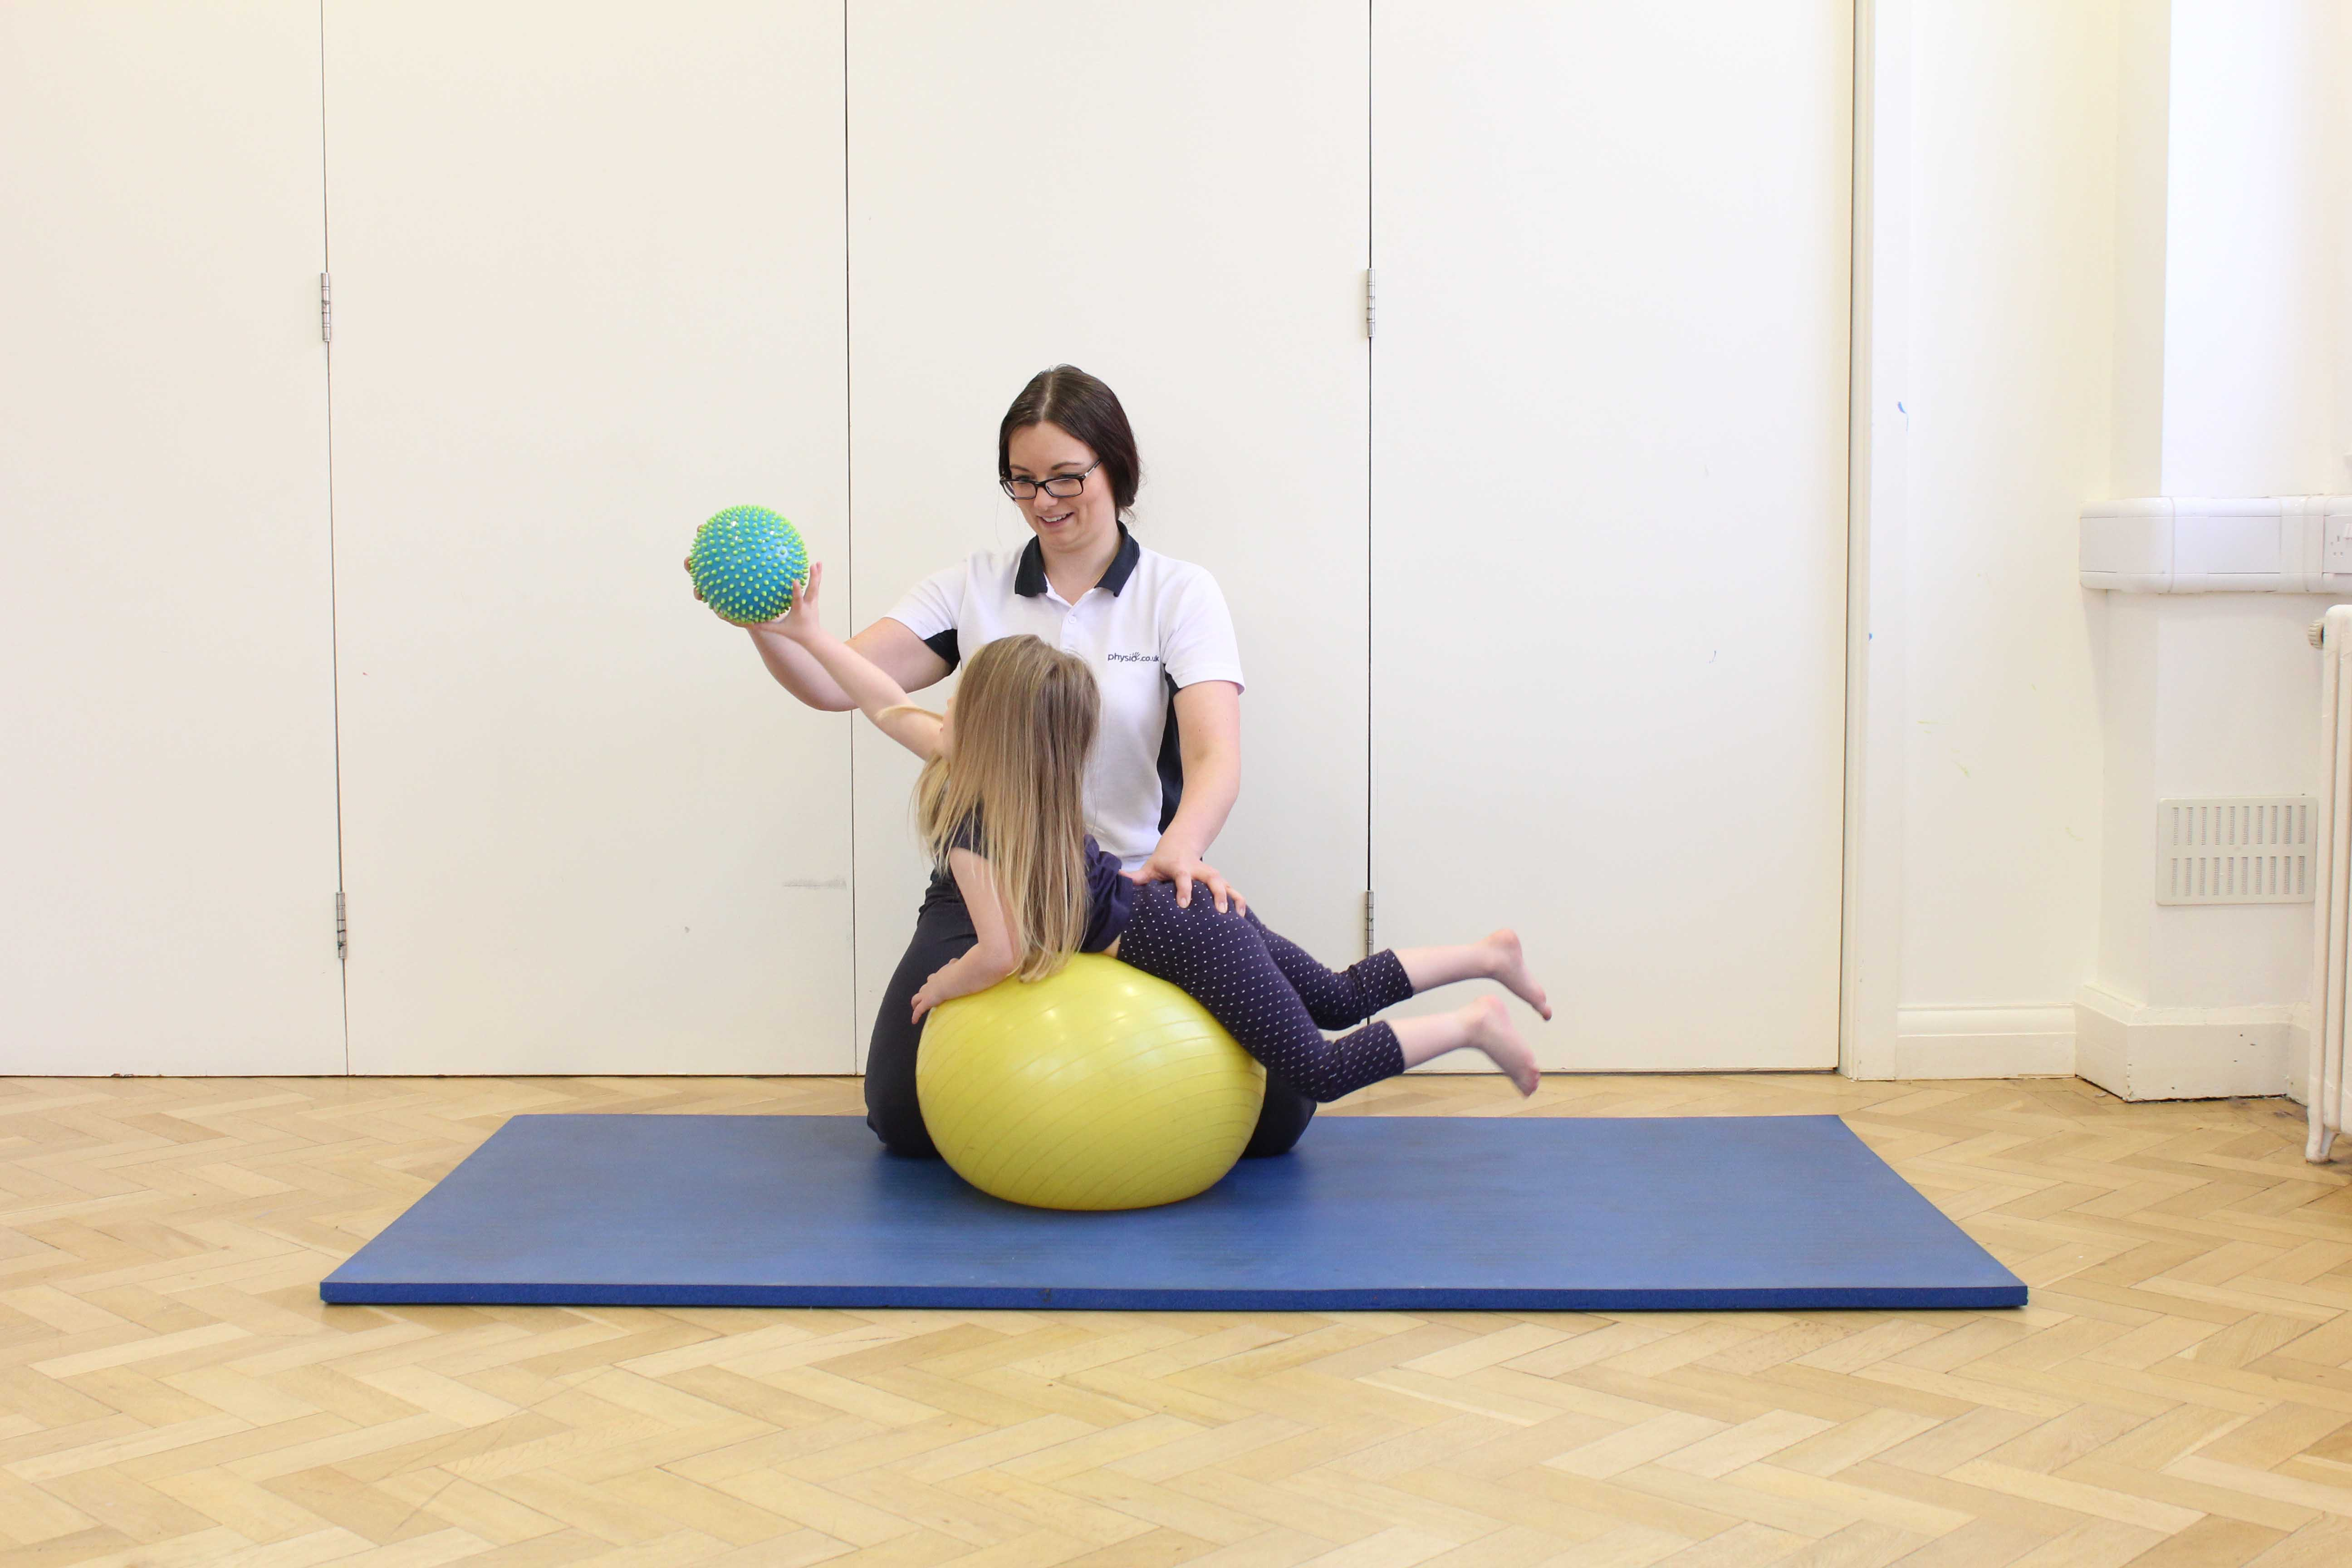 Active stretching exercises over a gym ball under close supervision of specialist paediatric physiotherapist